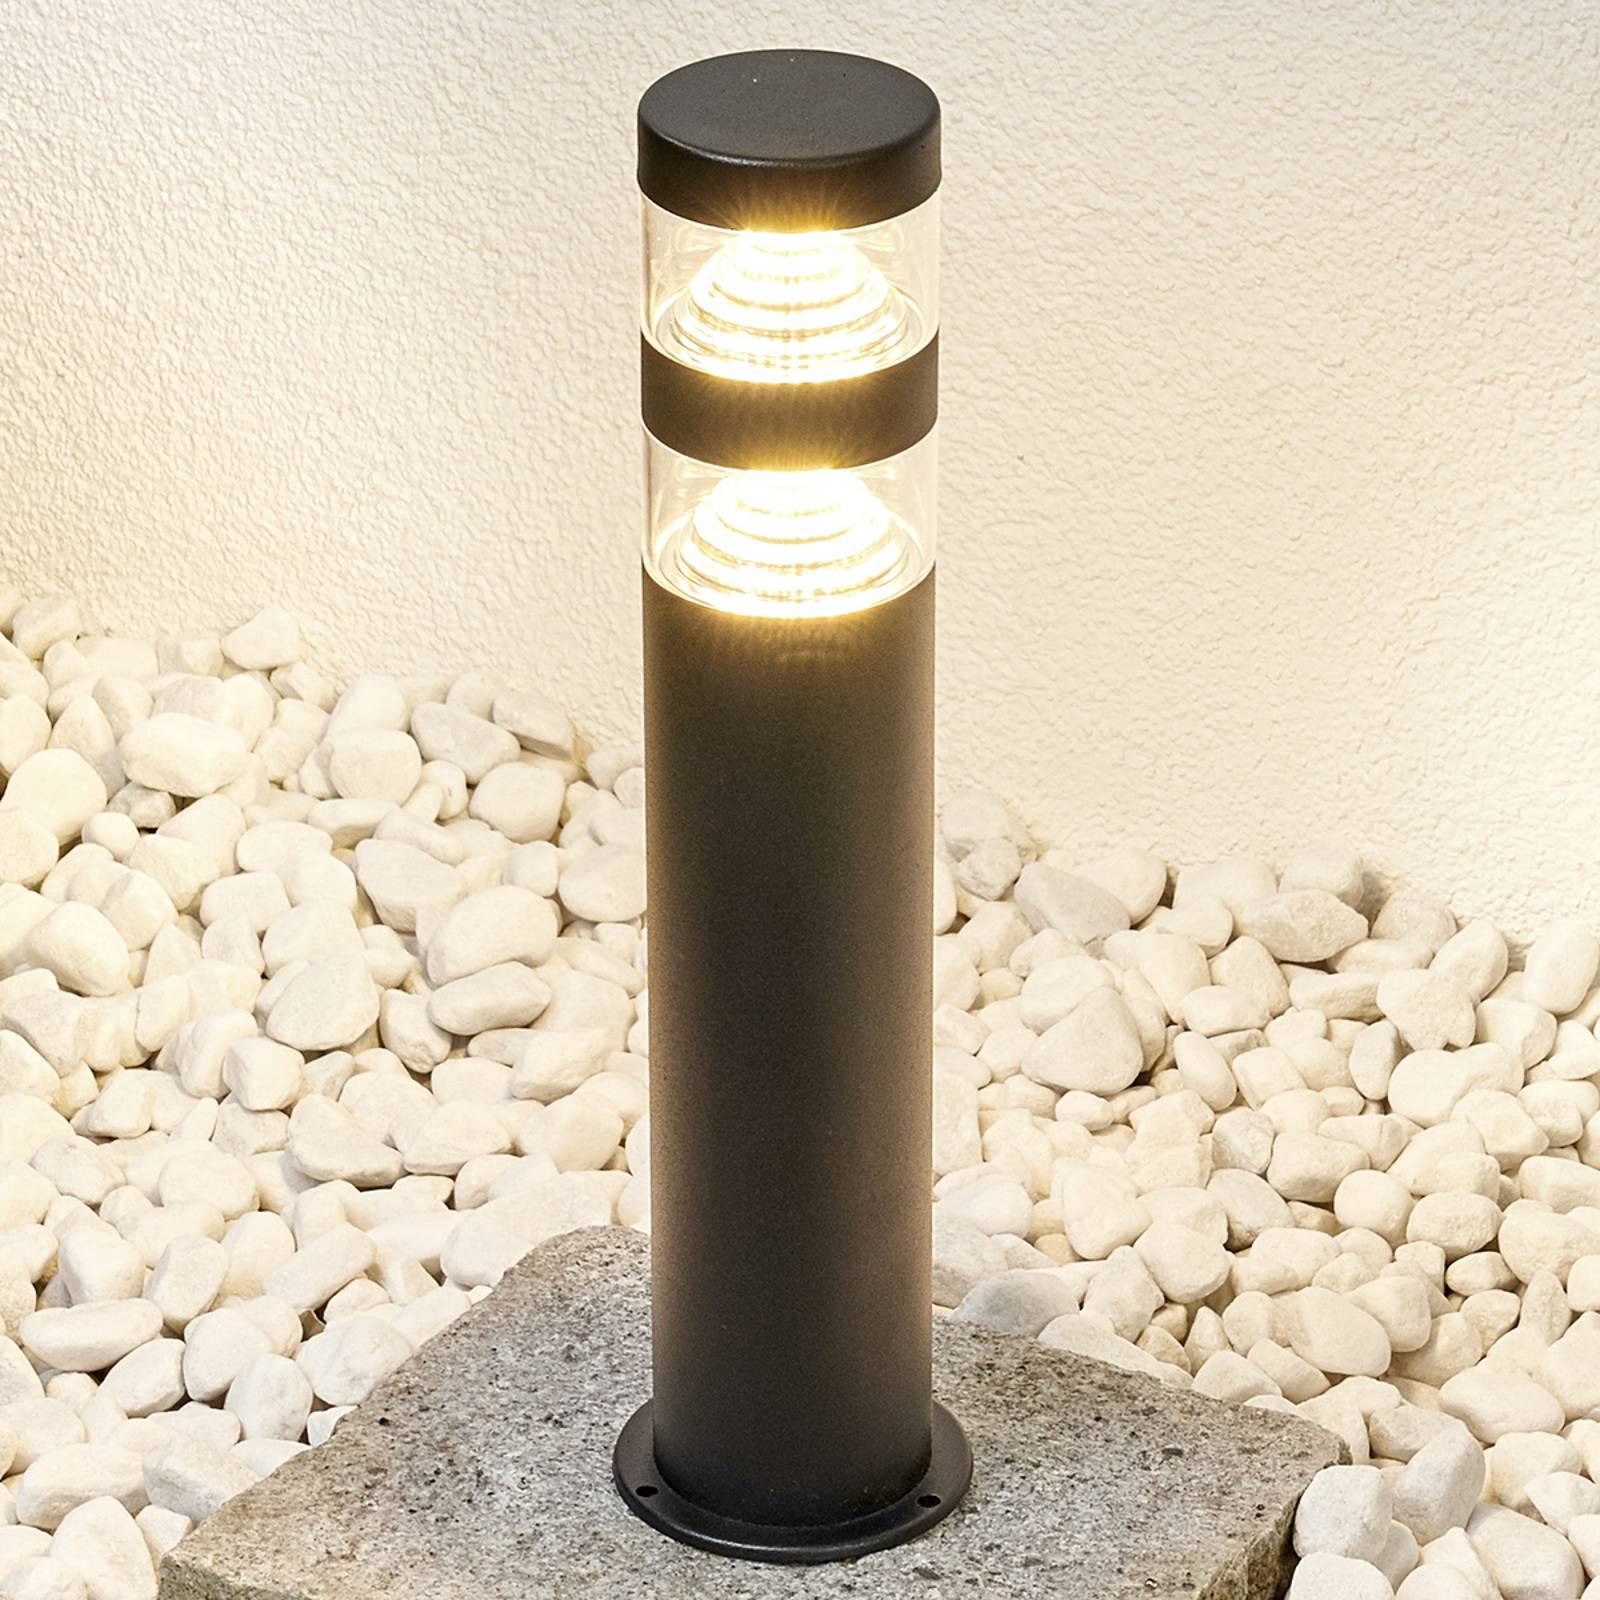 Lanea pillar light with LEDs - warm white from Lindby